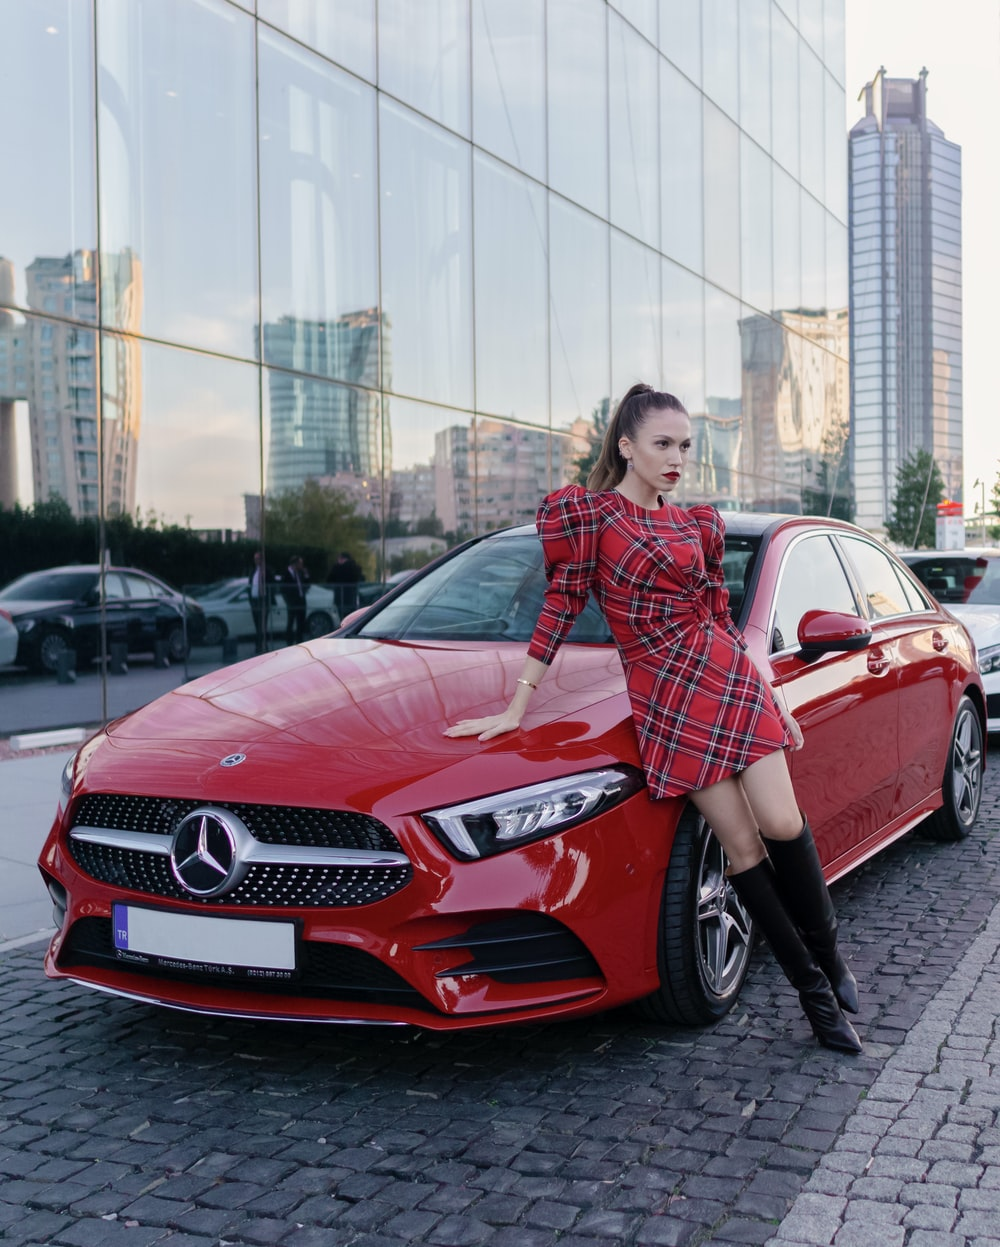 woman in red and black plaid dress shirt standing beside red mercedes benz car